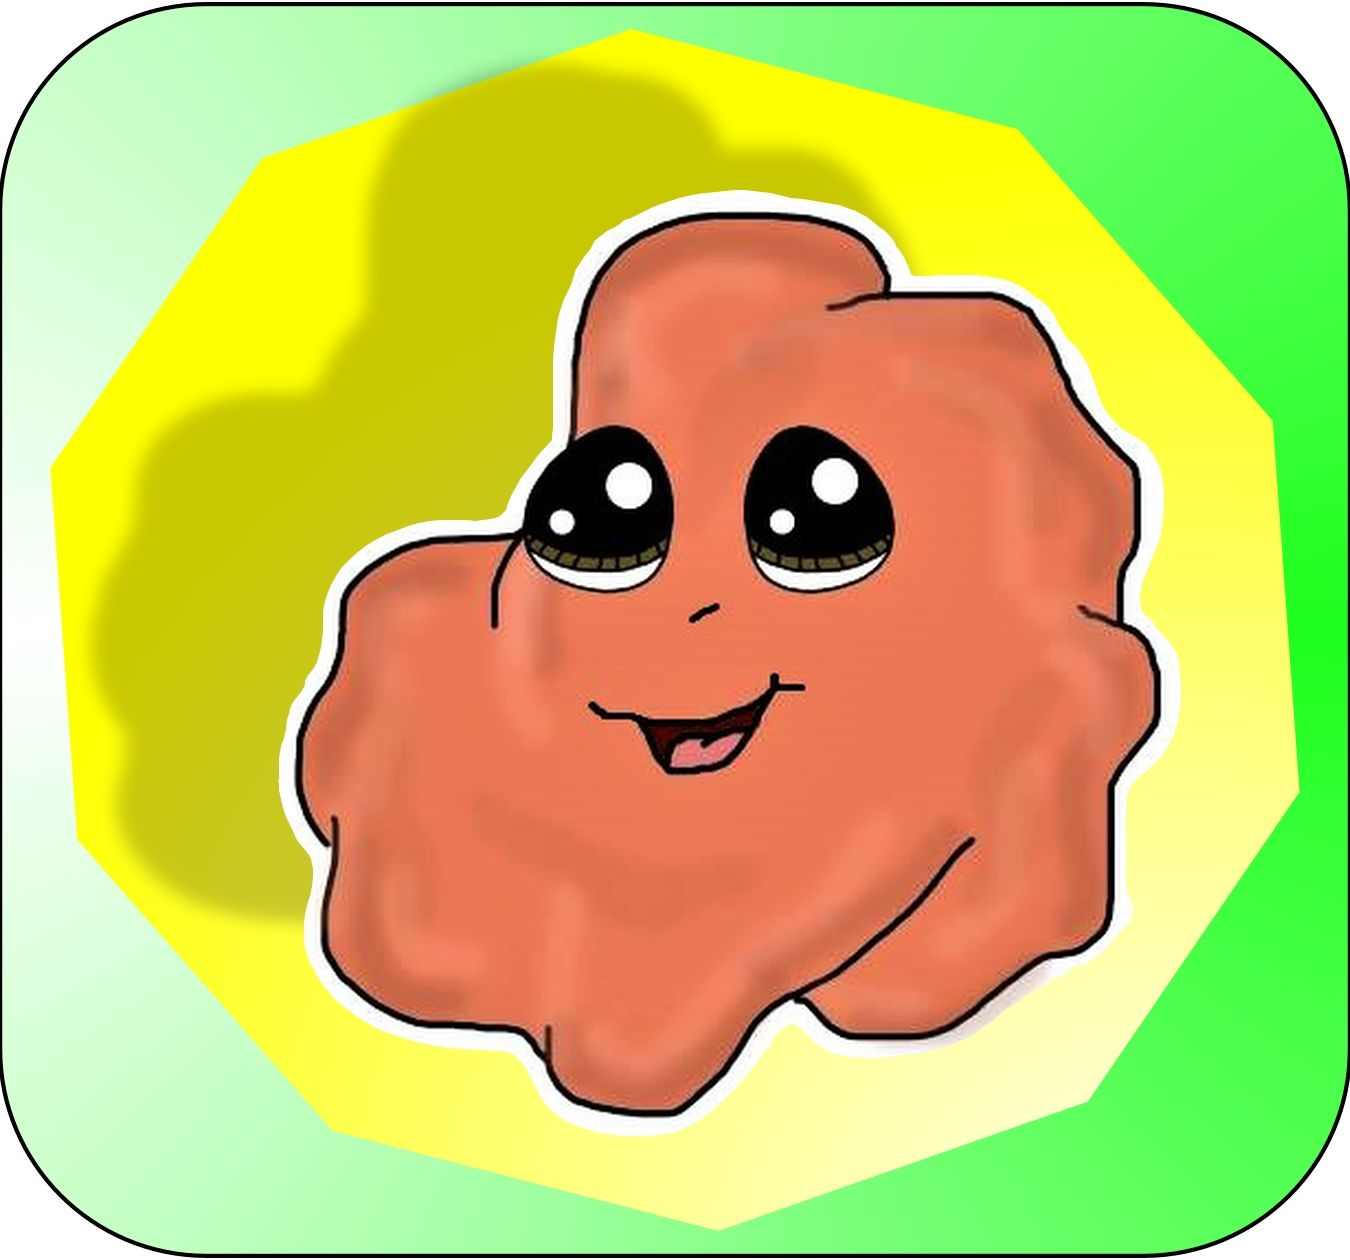 Lump of clay clipart jpg royalty free library Pin by Mario Crisafi on Lumpy \